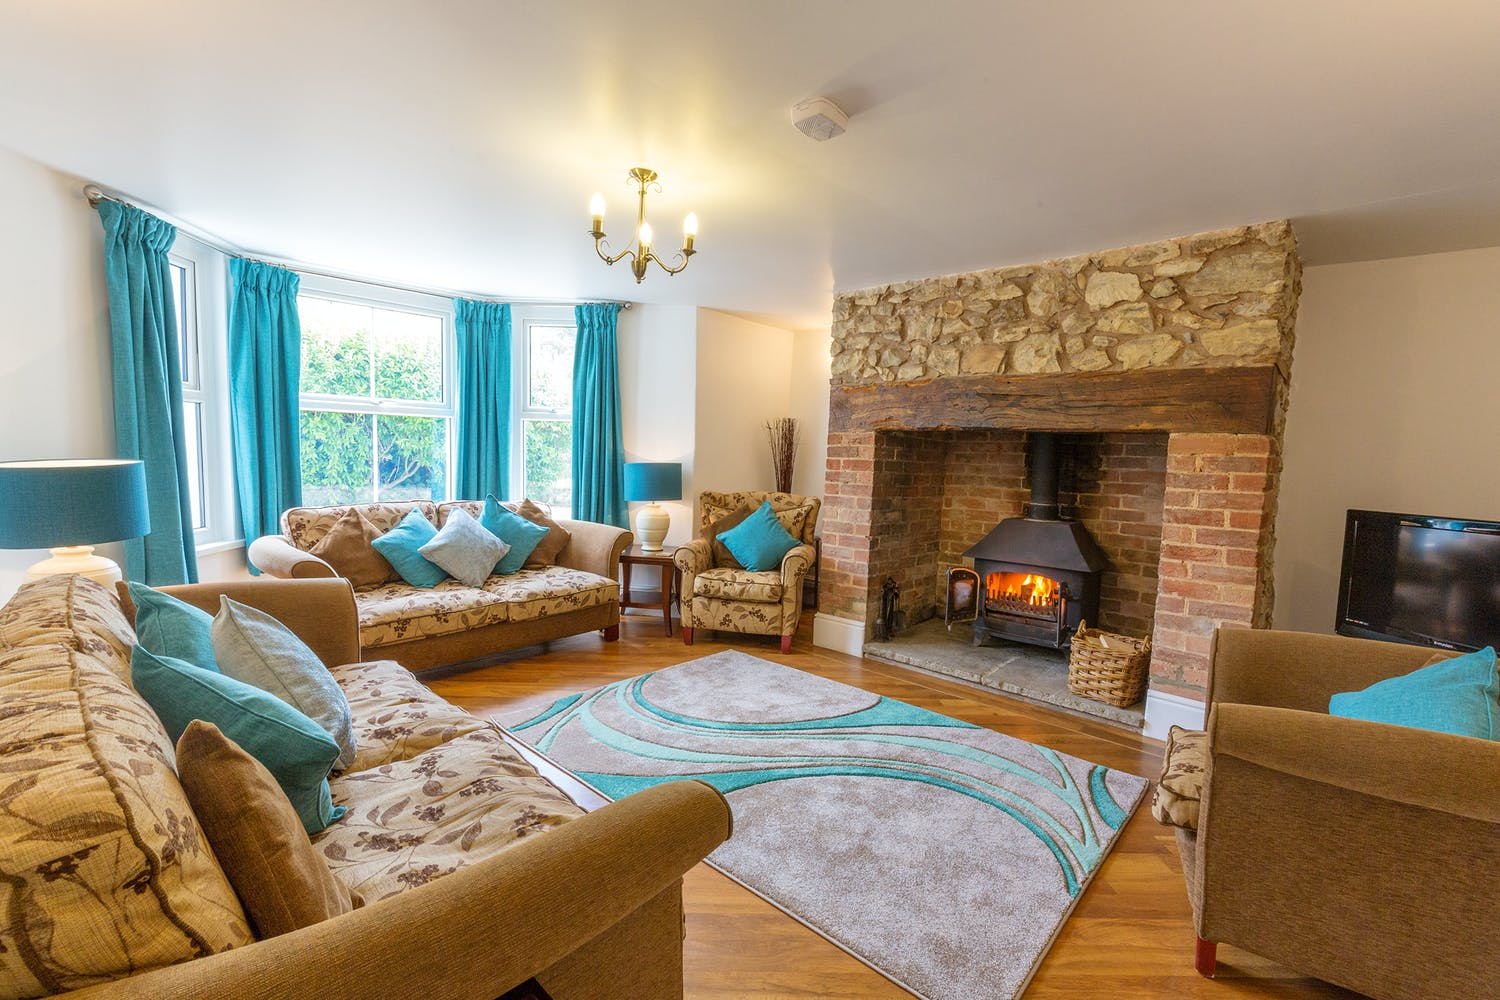 Holiday cottages in devon with a swimming pool holiday - Holiday homes with indoor swimming pool ...